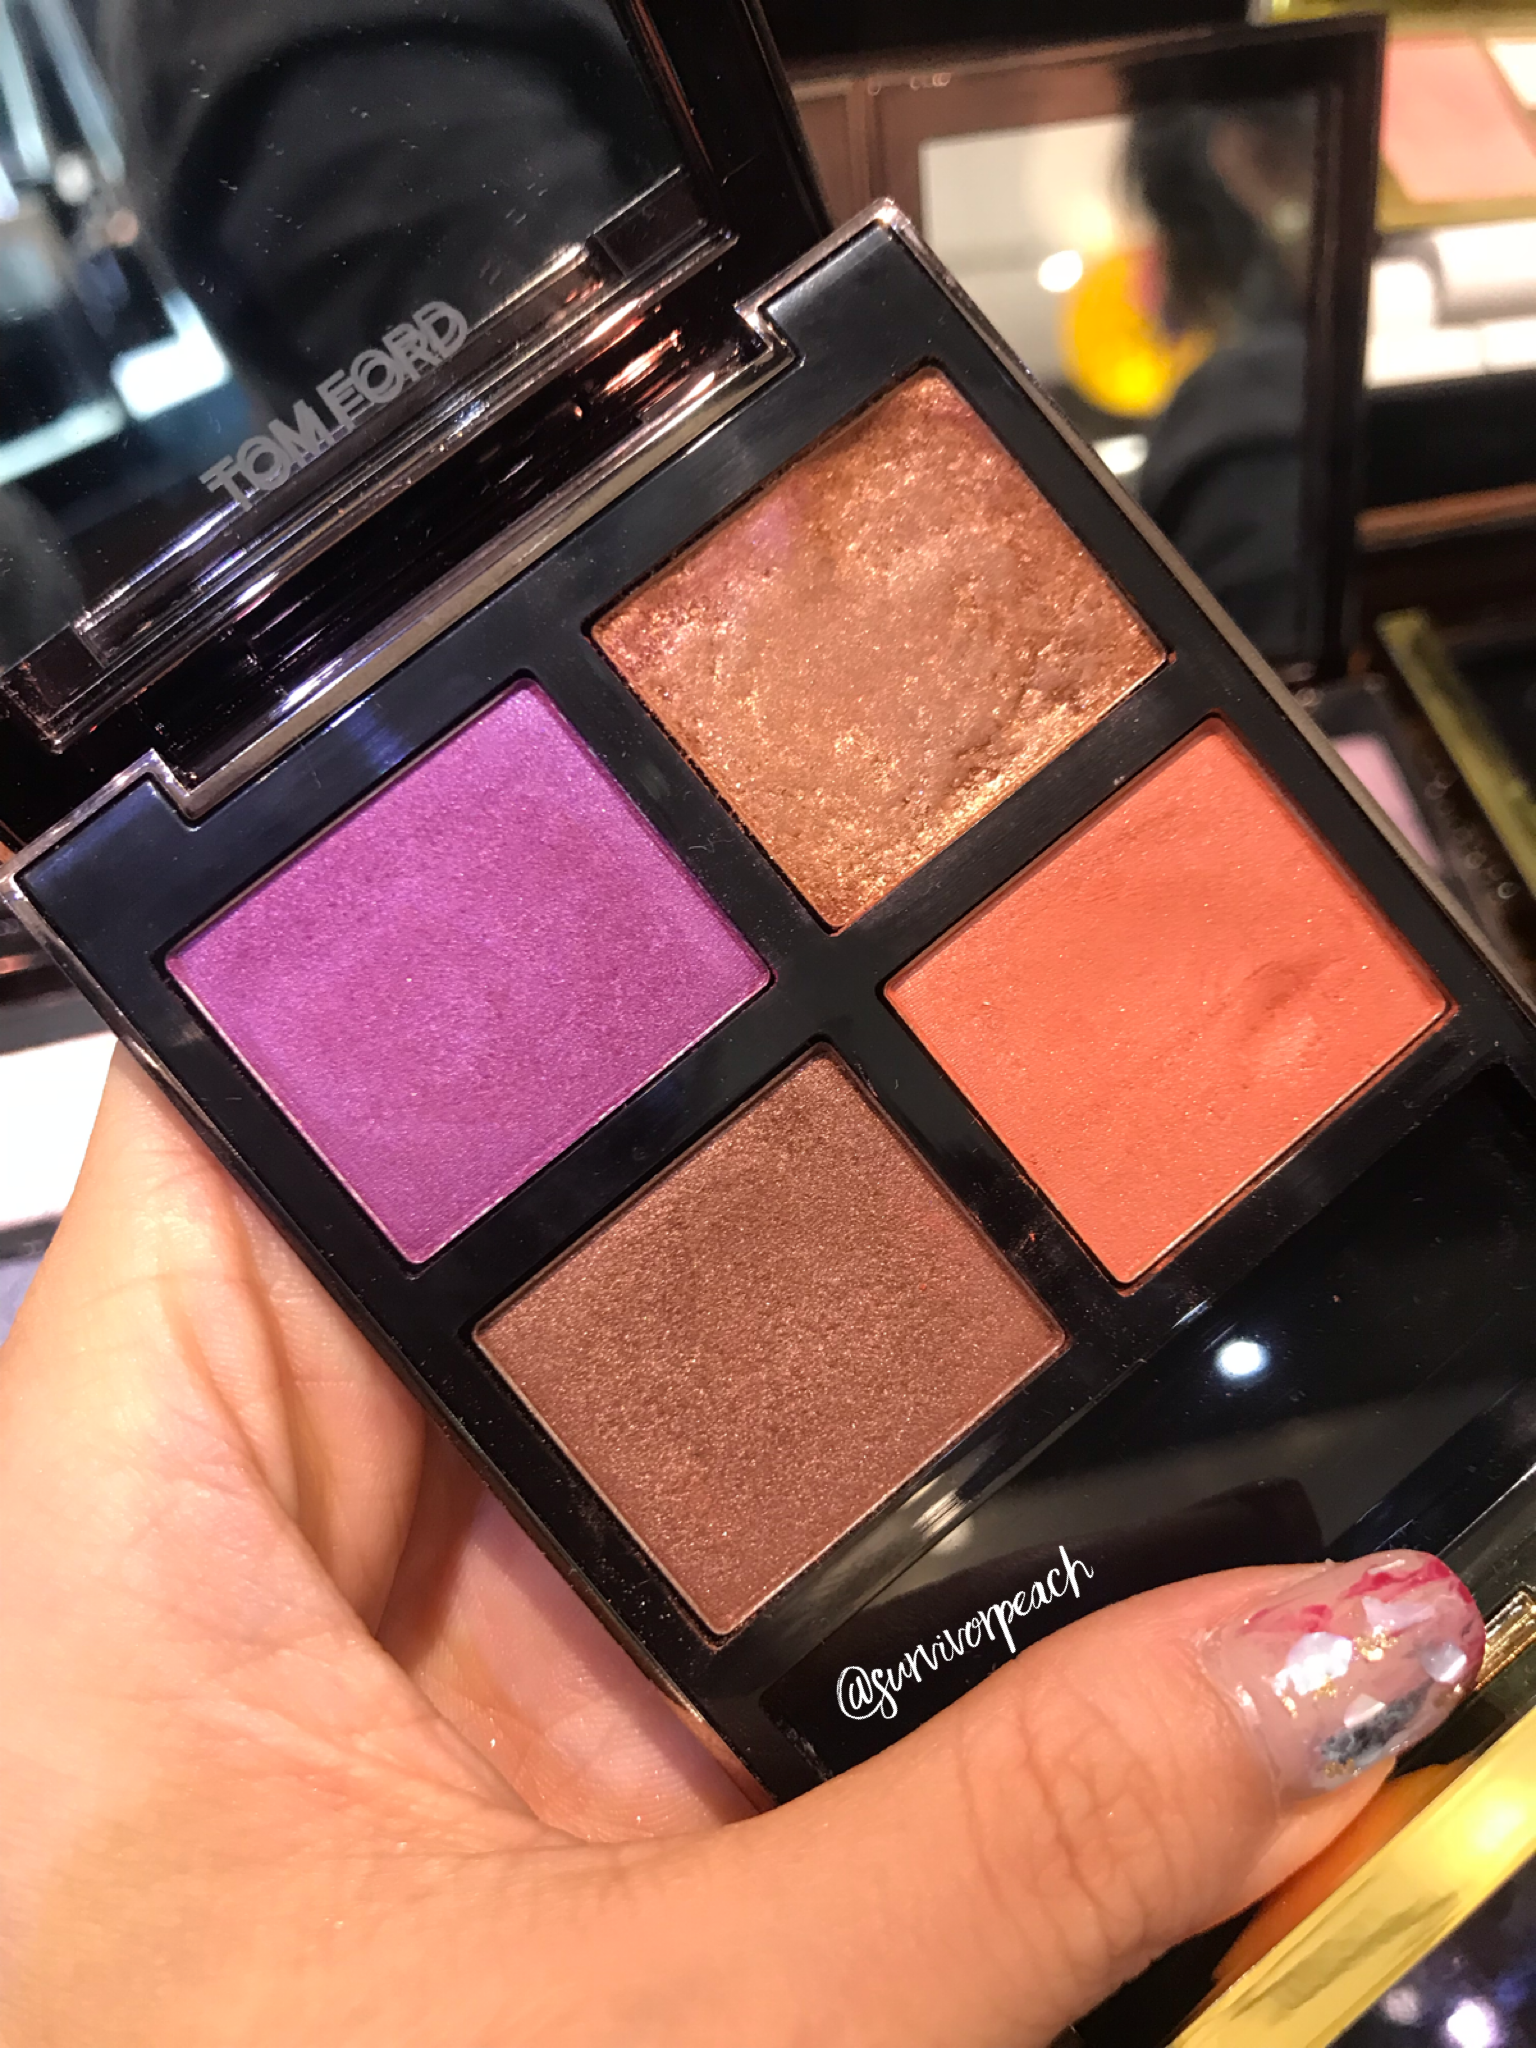 Tom Ford Eye Quad in African Violet